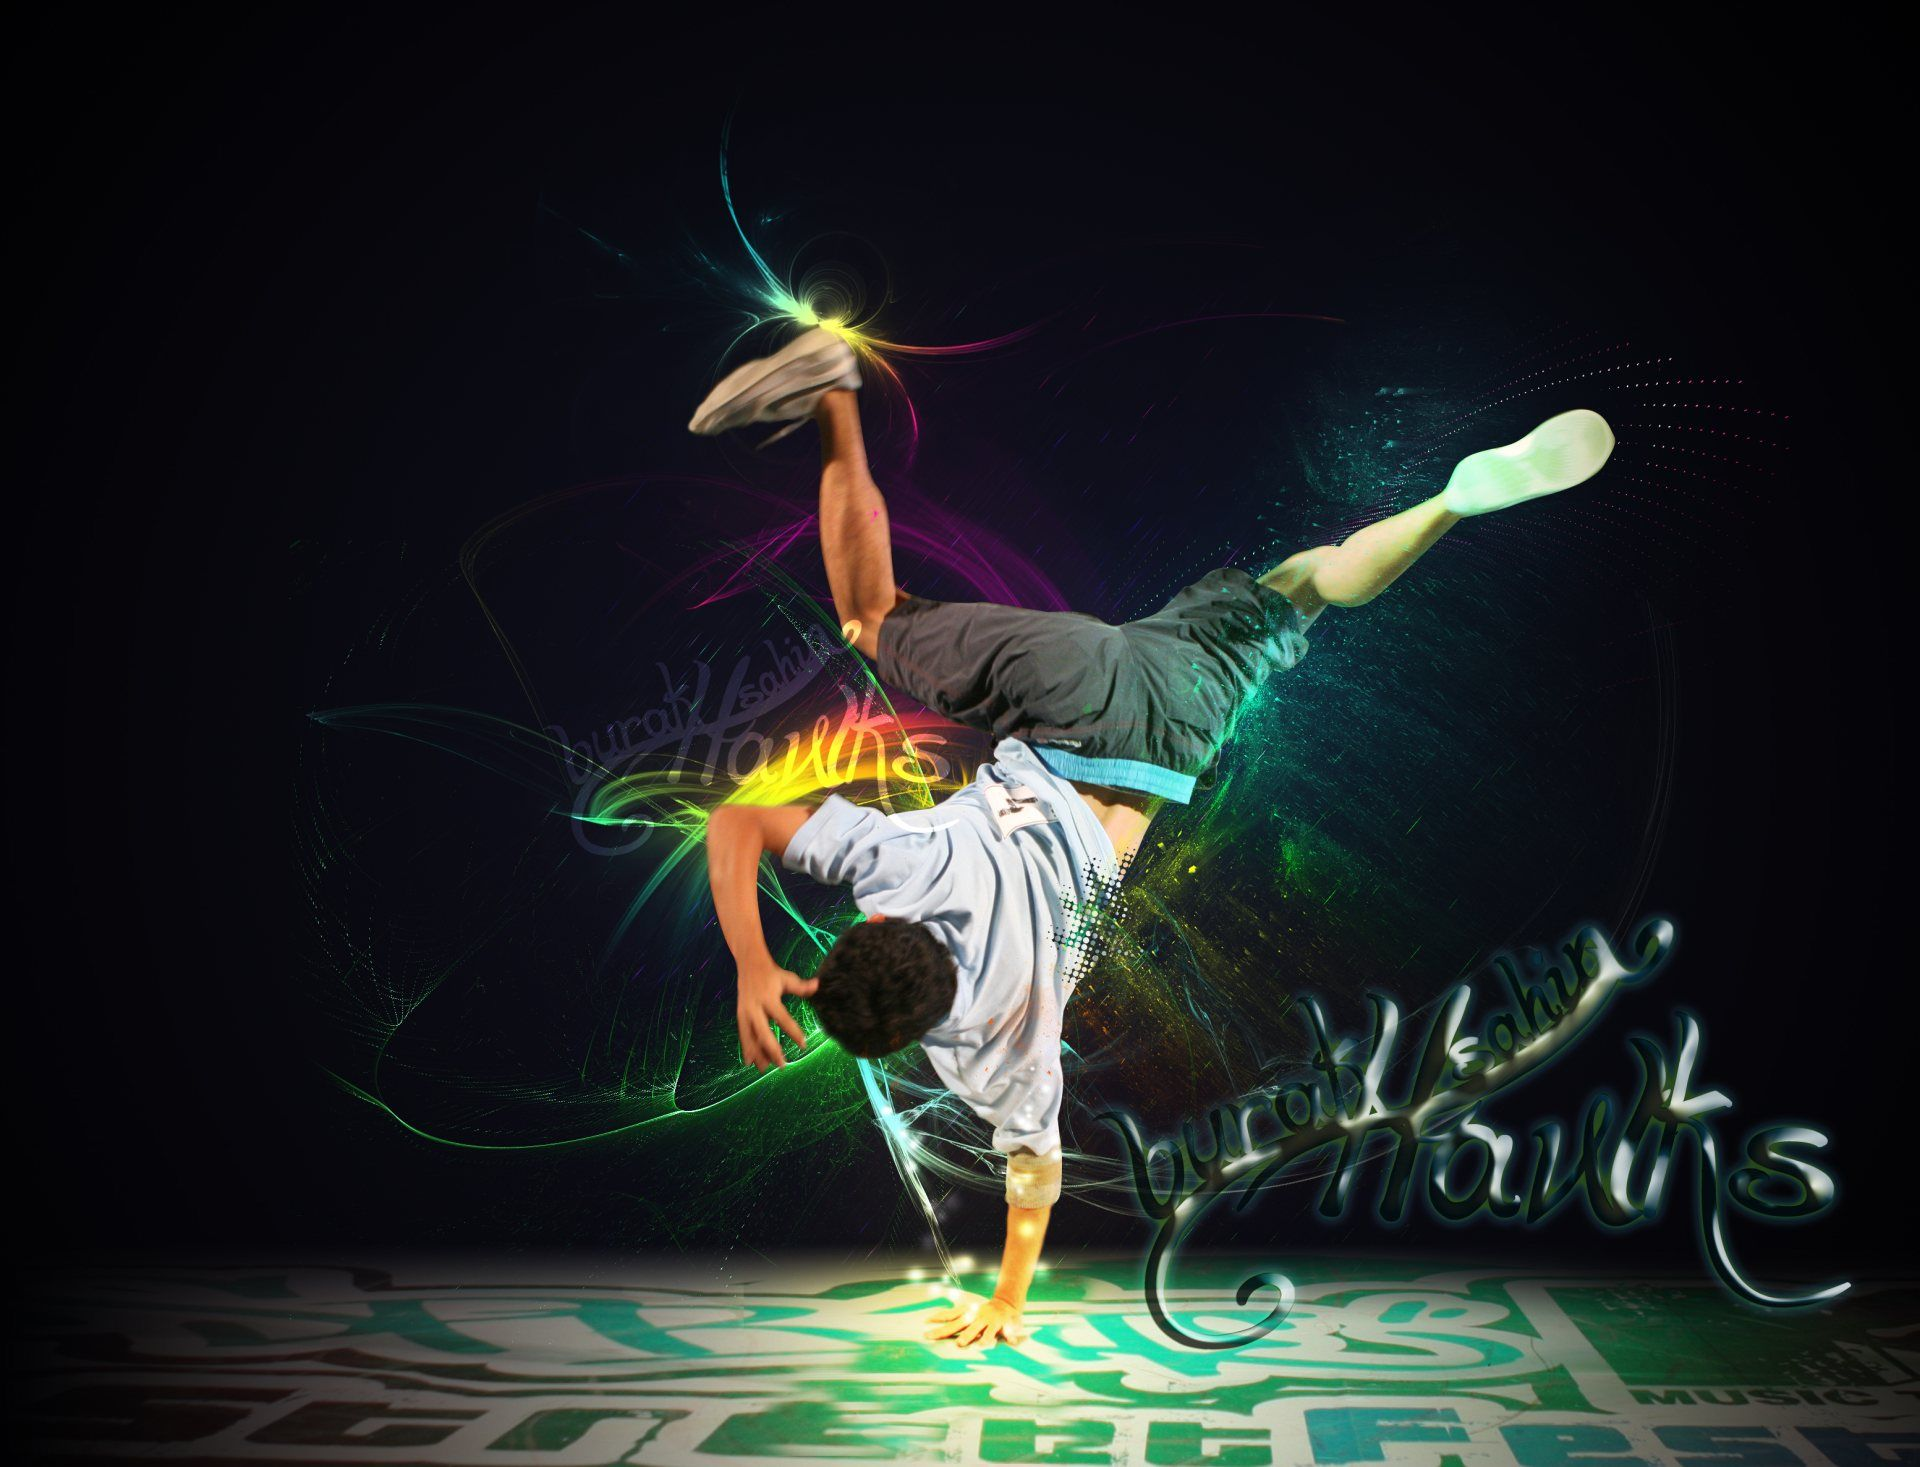 Undefined Hip Hop Wallpapers 49 Wallpapers Adorable Wallpapers Dance Wallpaper Hip Hop Background Break Dance